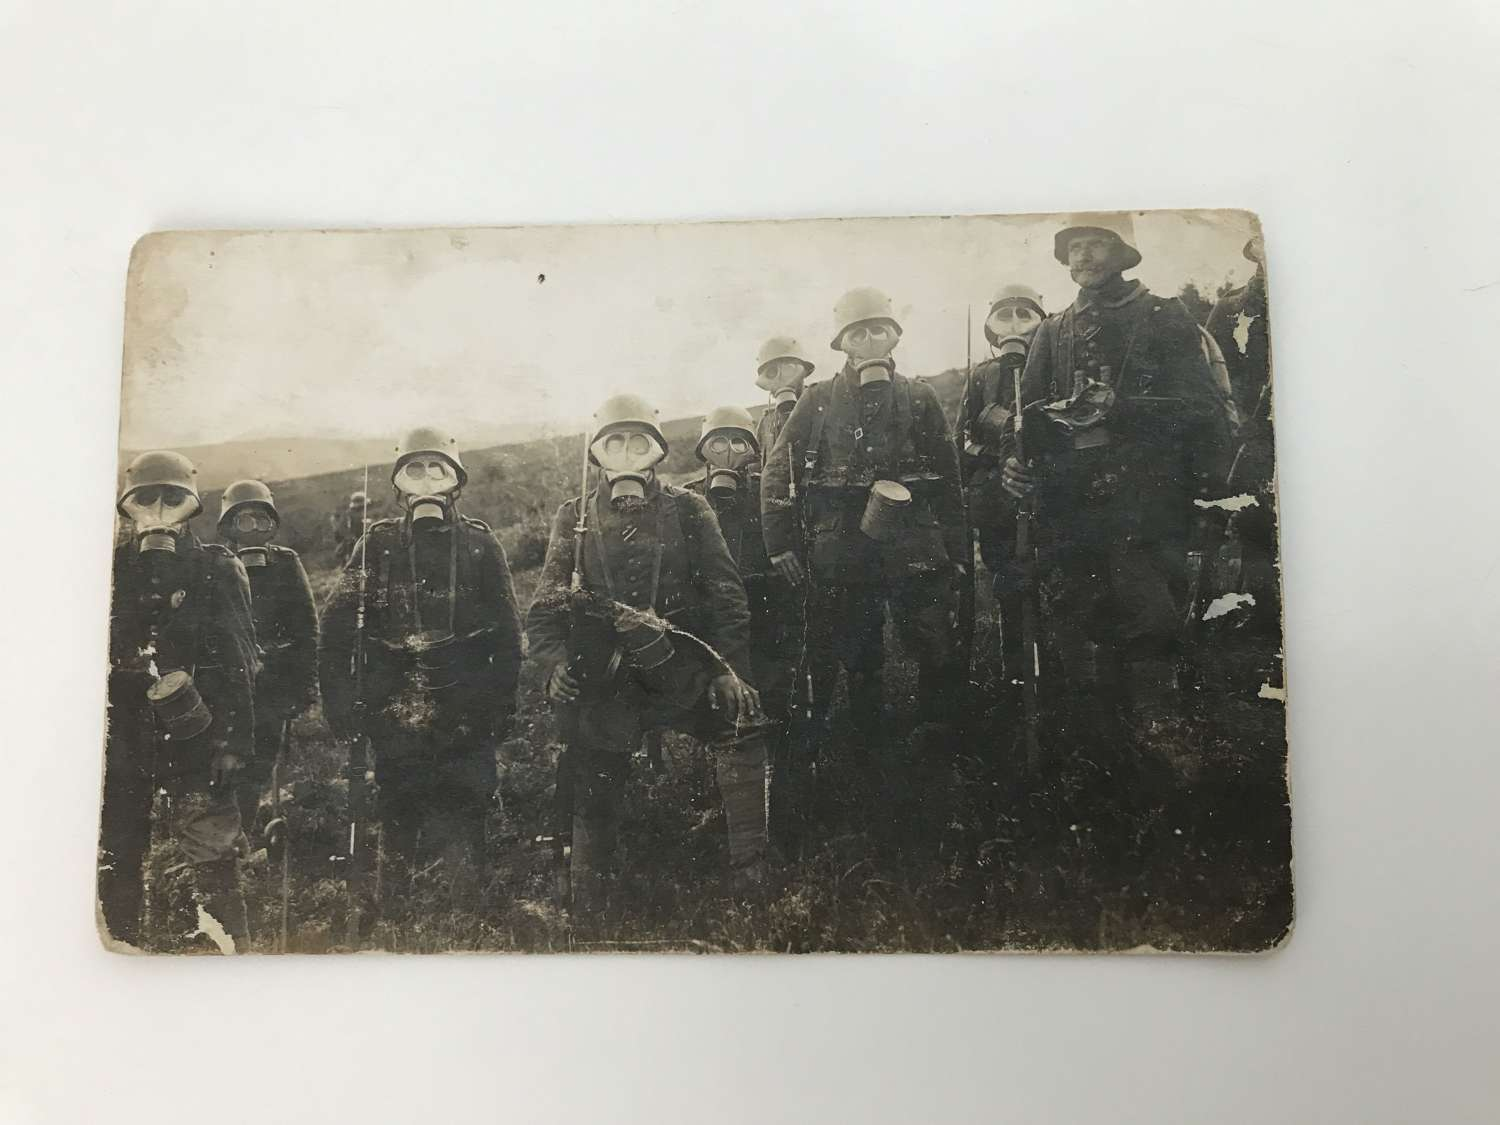 Postcard image of German trench raiding party